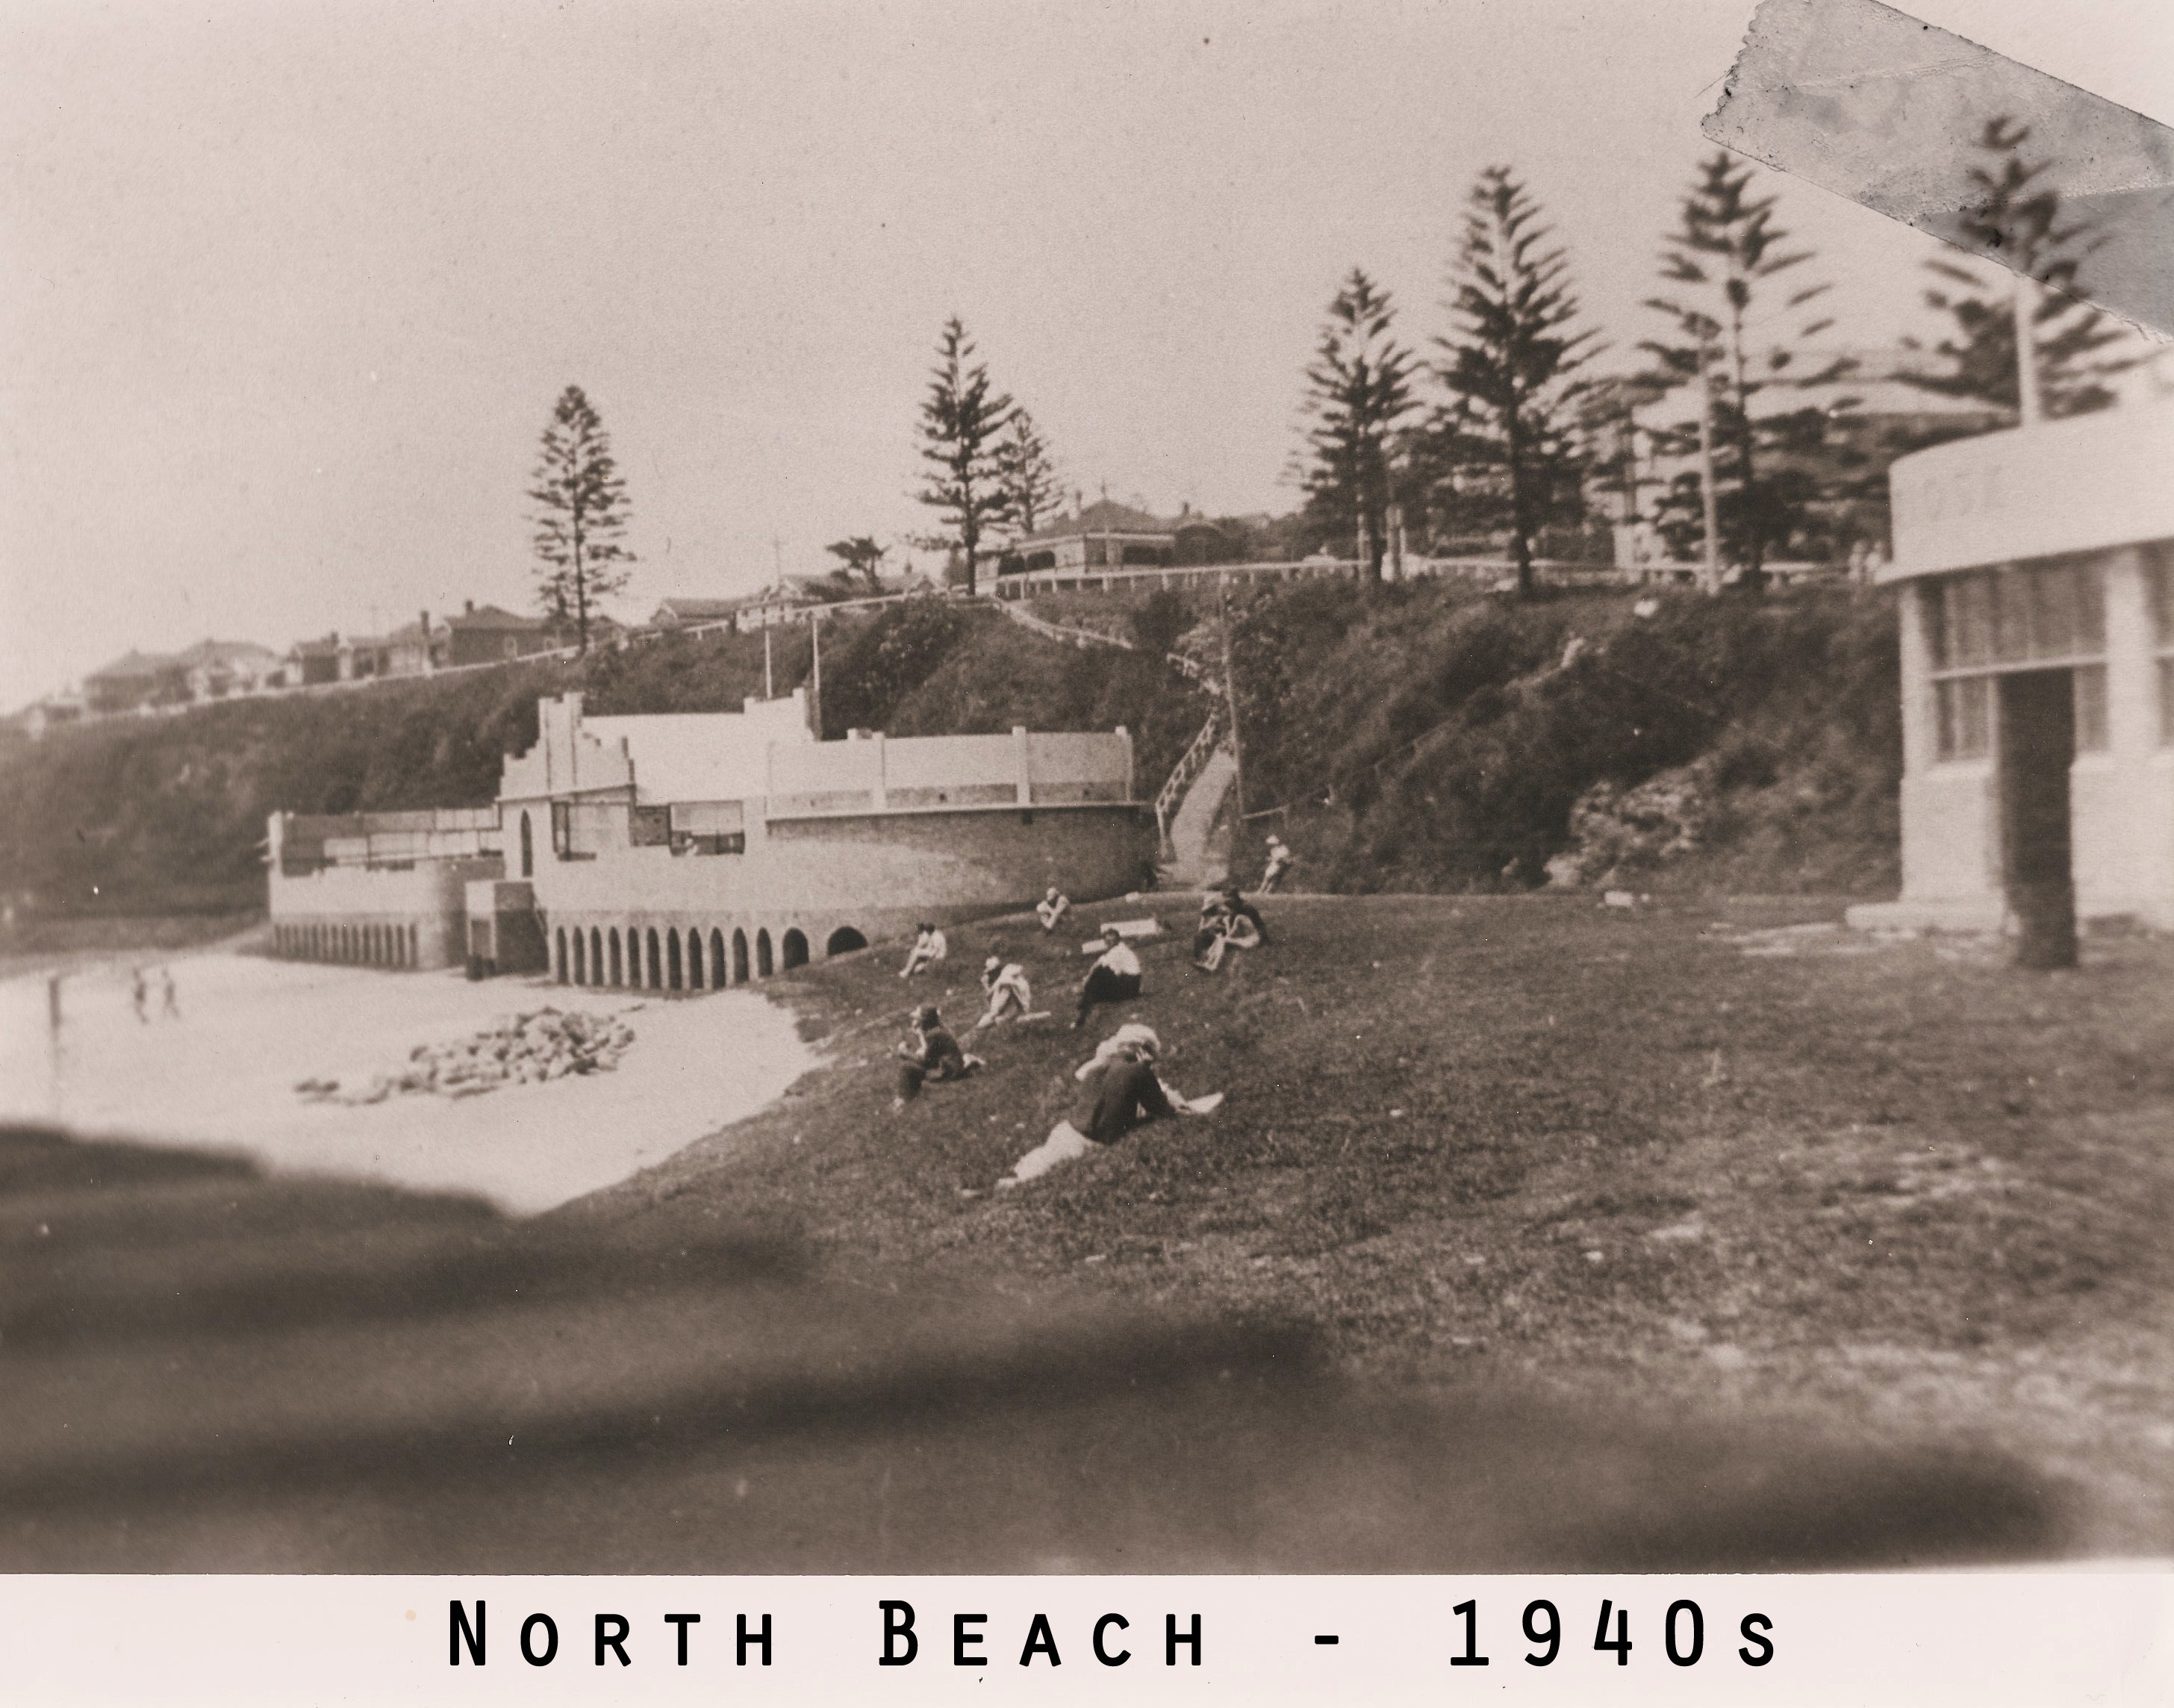 North Beach 1940